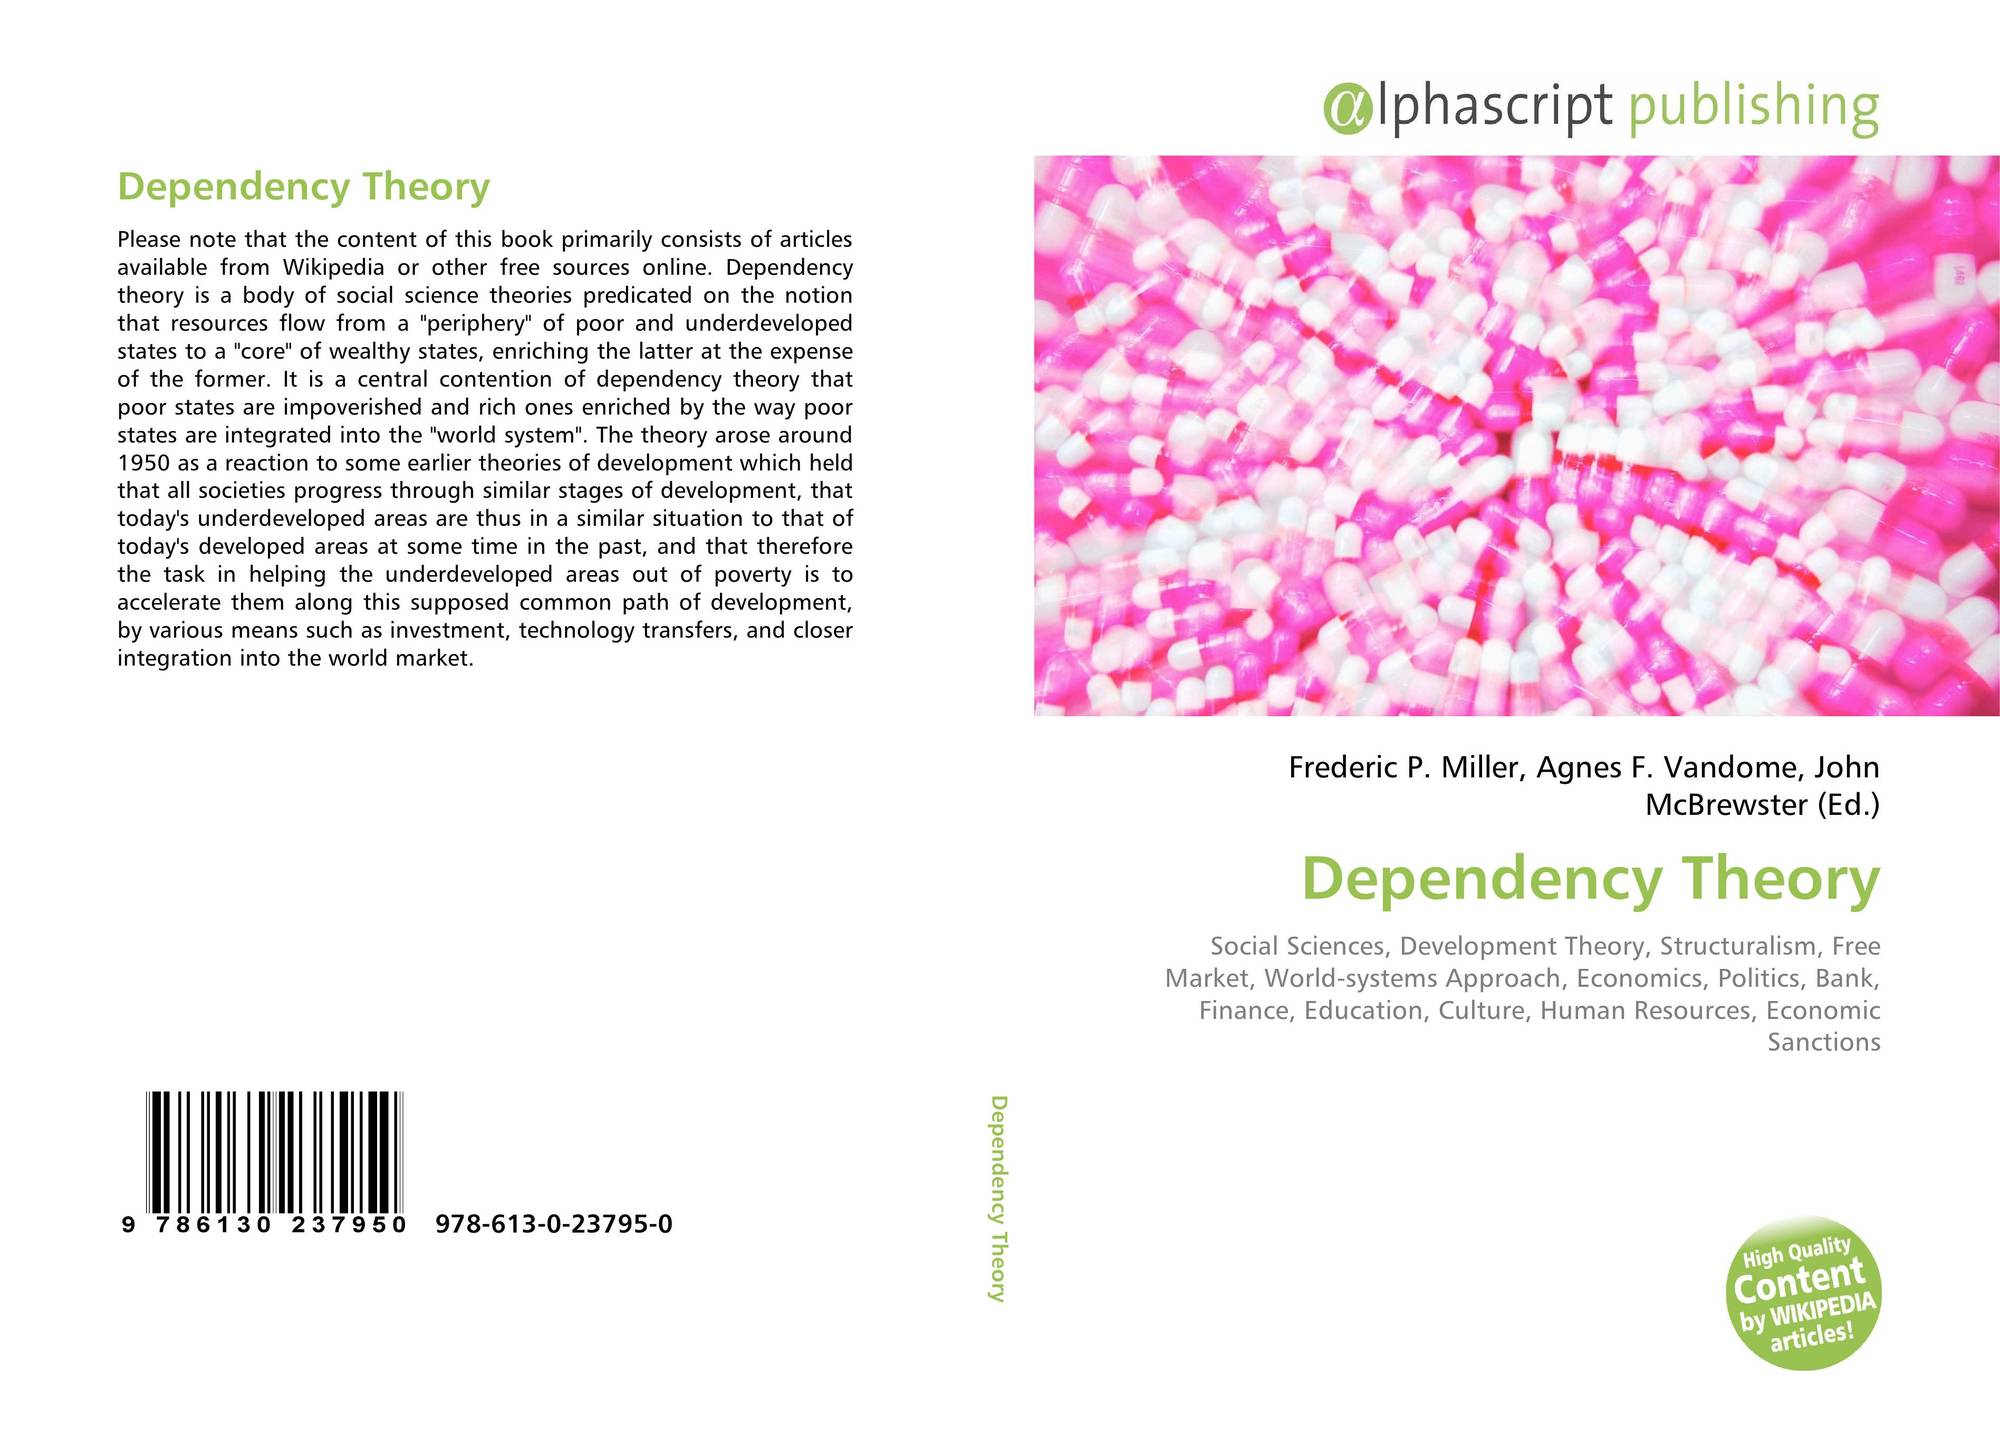 a resource dependence perspective essay The resource dependence perspective (hereafter rd) refers to a research tradition that emerged from the basic framework of jeffrey pfeffer and gerald r salancik's classic 1978 work, the external control of organizations: a resource dependence perspective (pfeffer and salancik 1978, cited under classic treatments) the theoretical arguments.